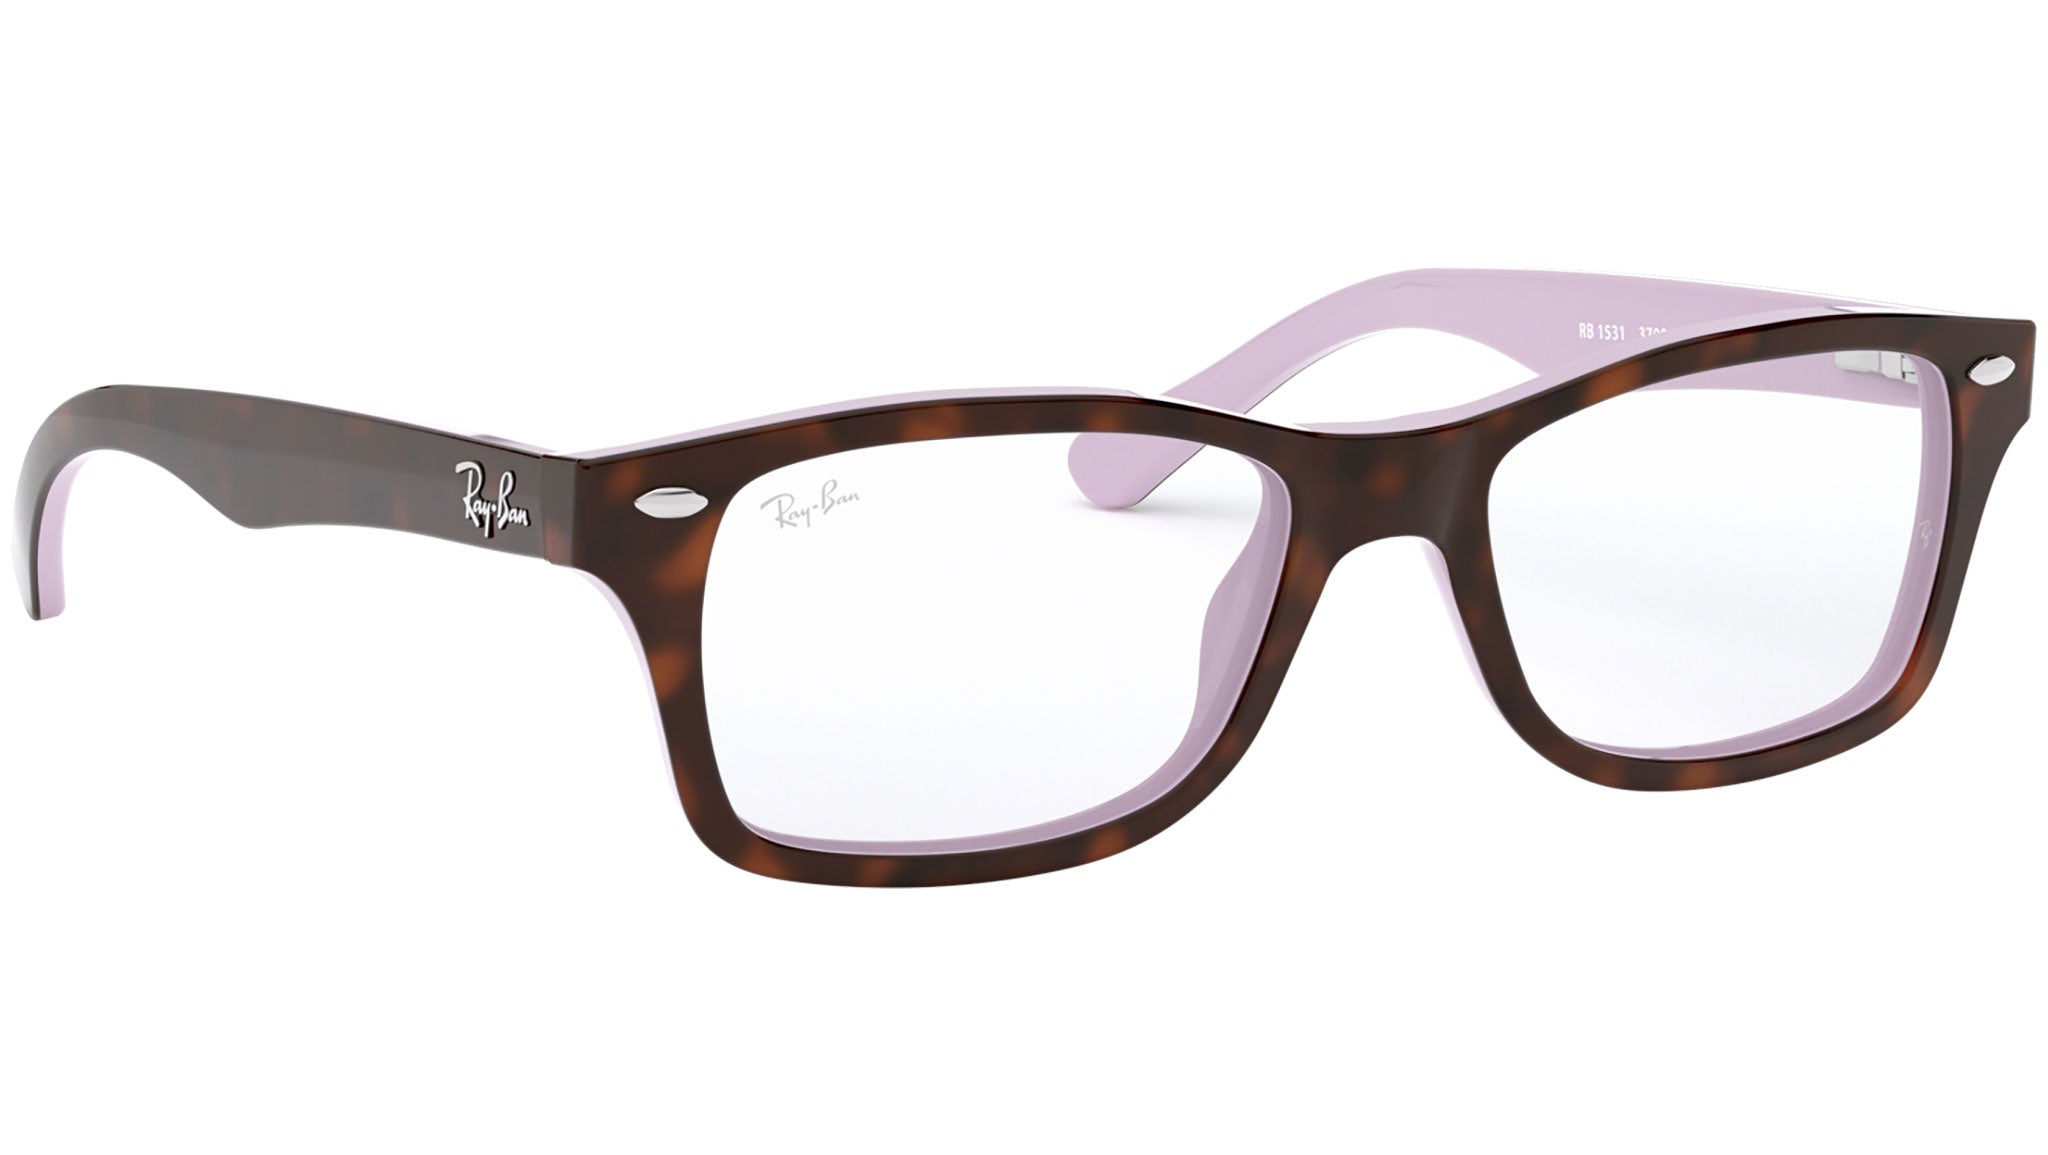 RY1531 For Kids tortoise and violet--eye-oo.it